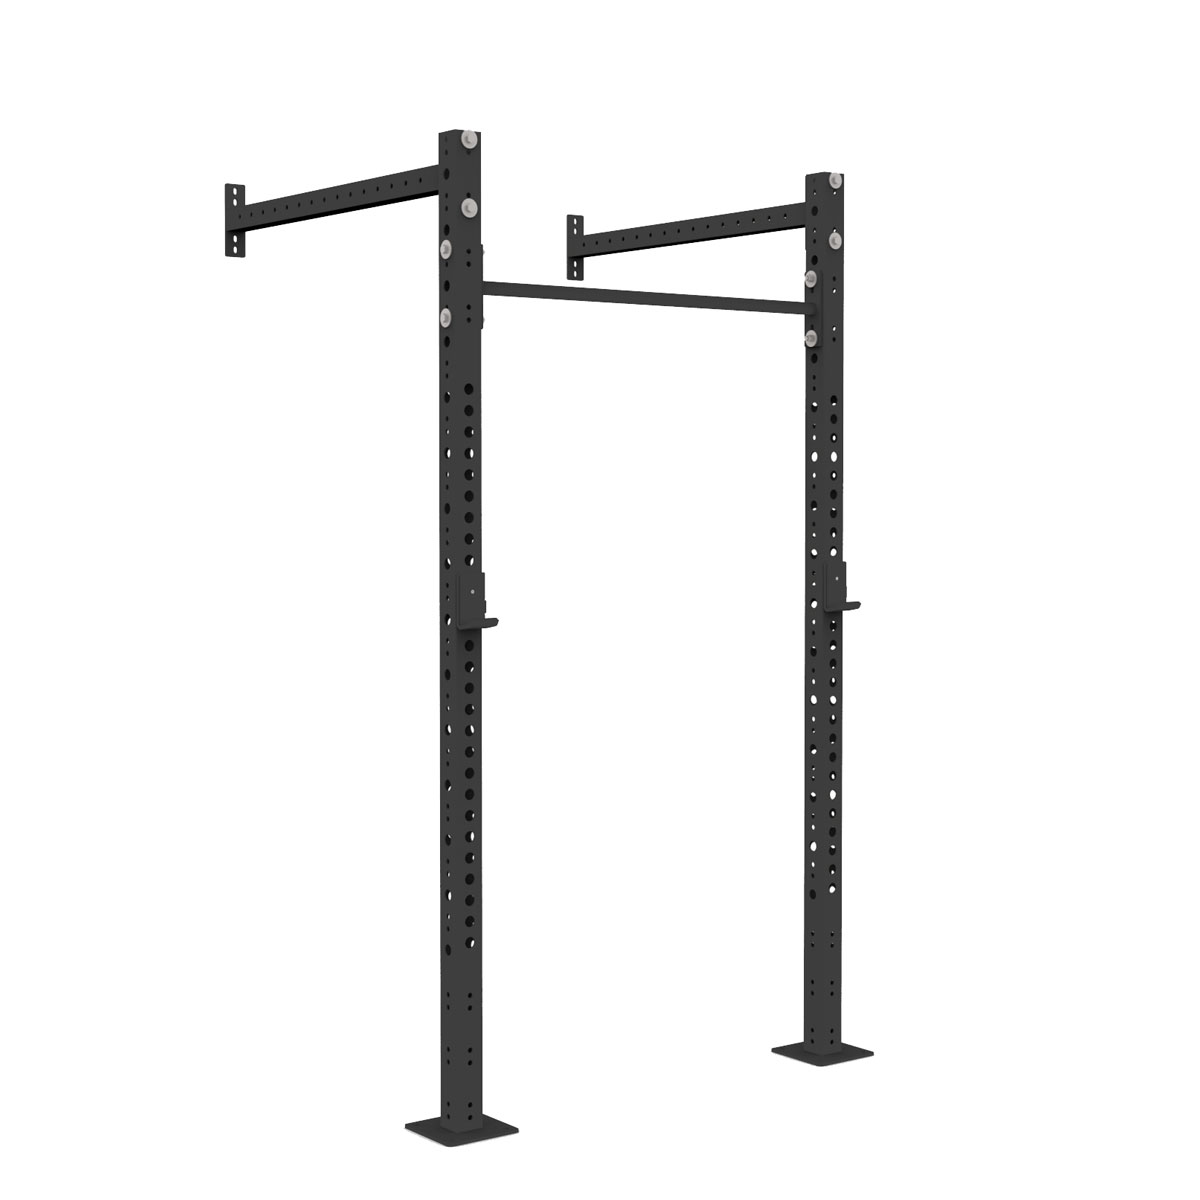 Competition 4x4 Wall-mount Rack - Out of Stock